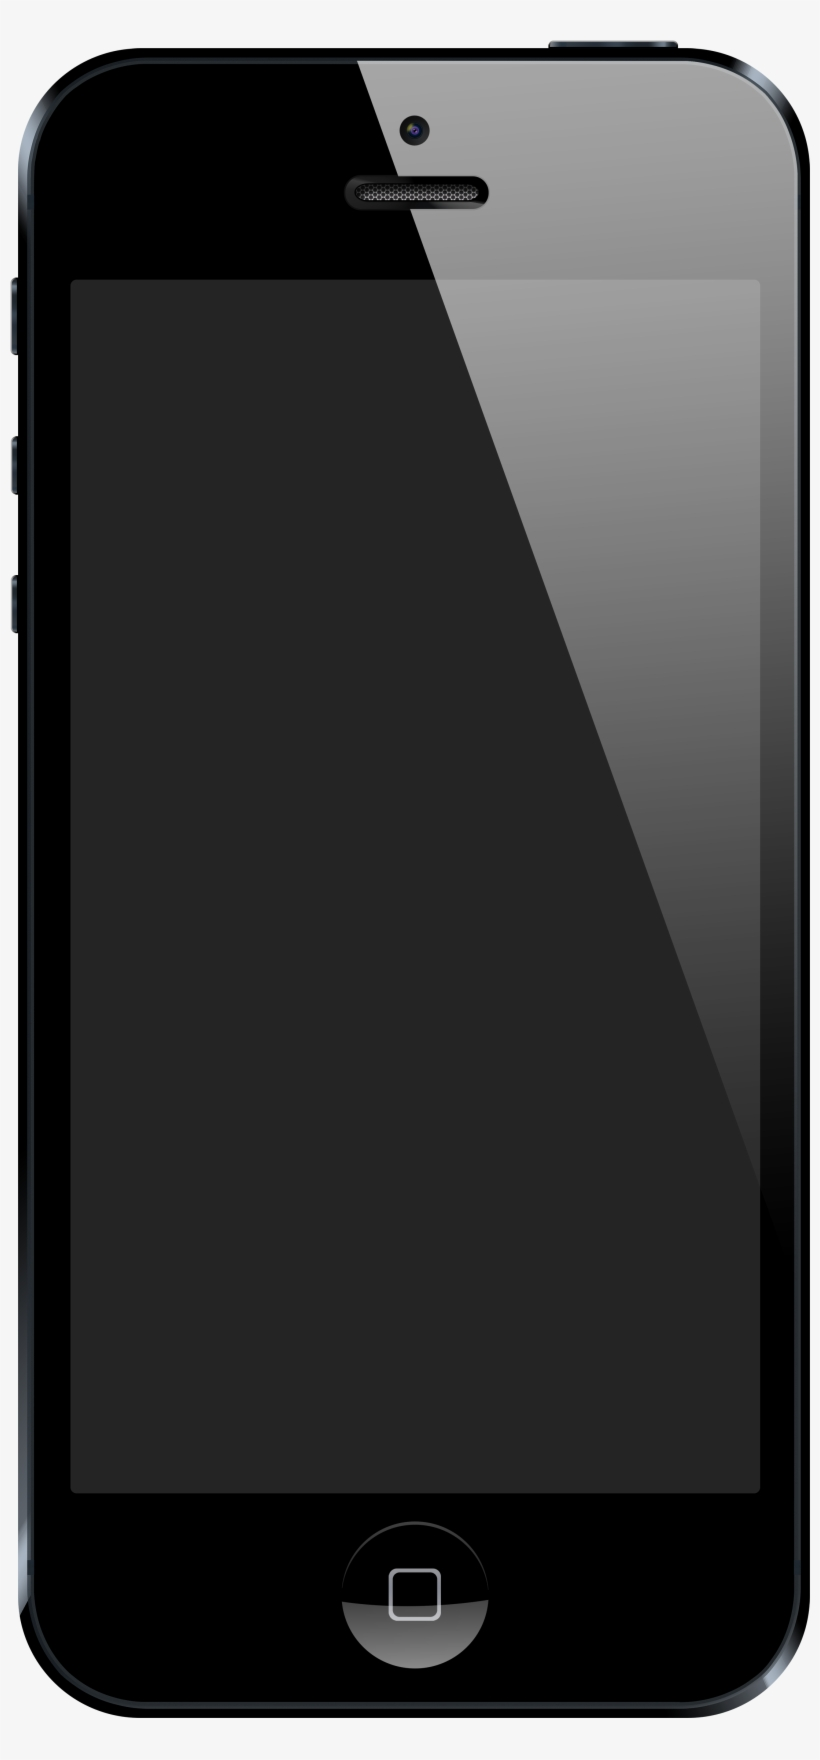 Free Icons Png - Iphone 4s Png, transparent png #364949